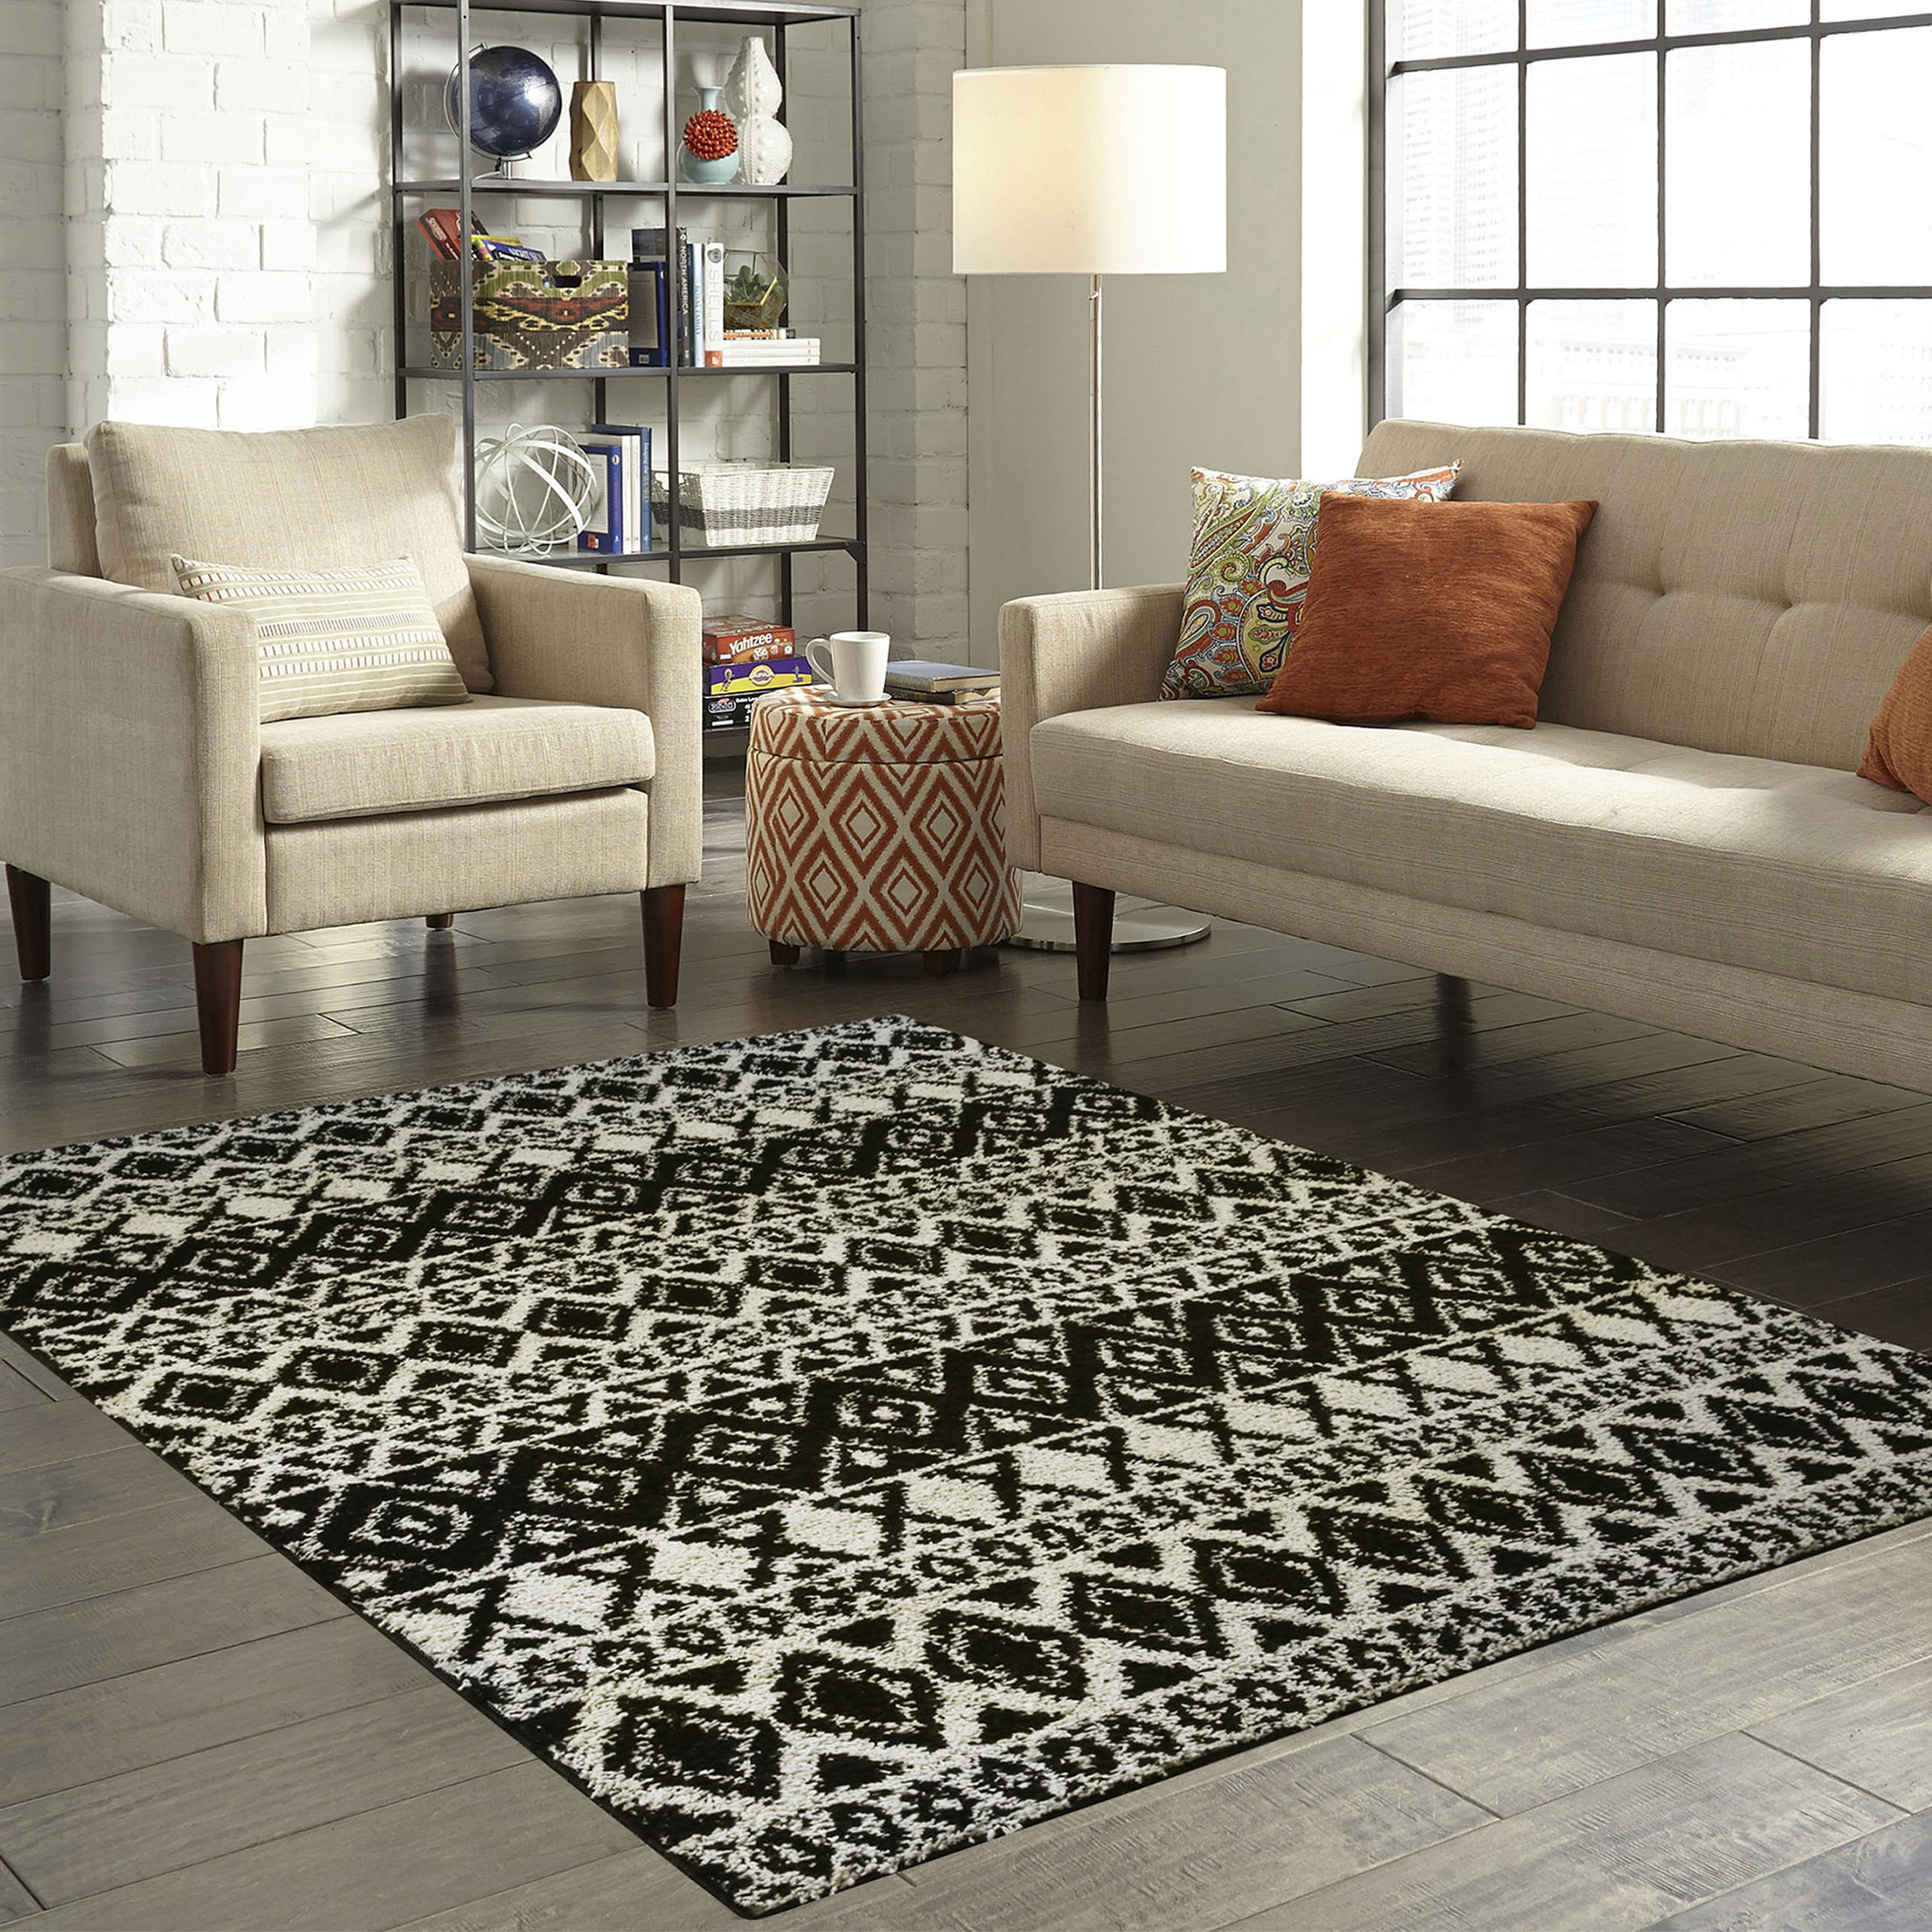 Amazing Mainstays Hayden Shag Area And Runner Rug Collection